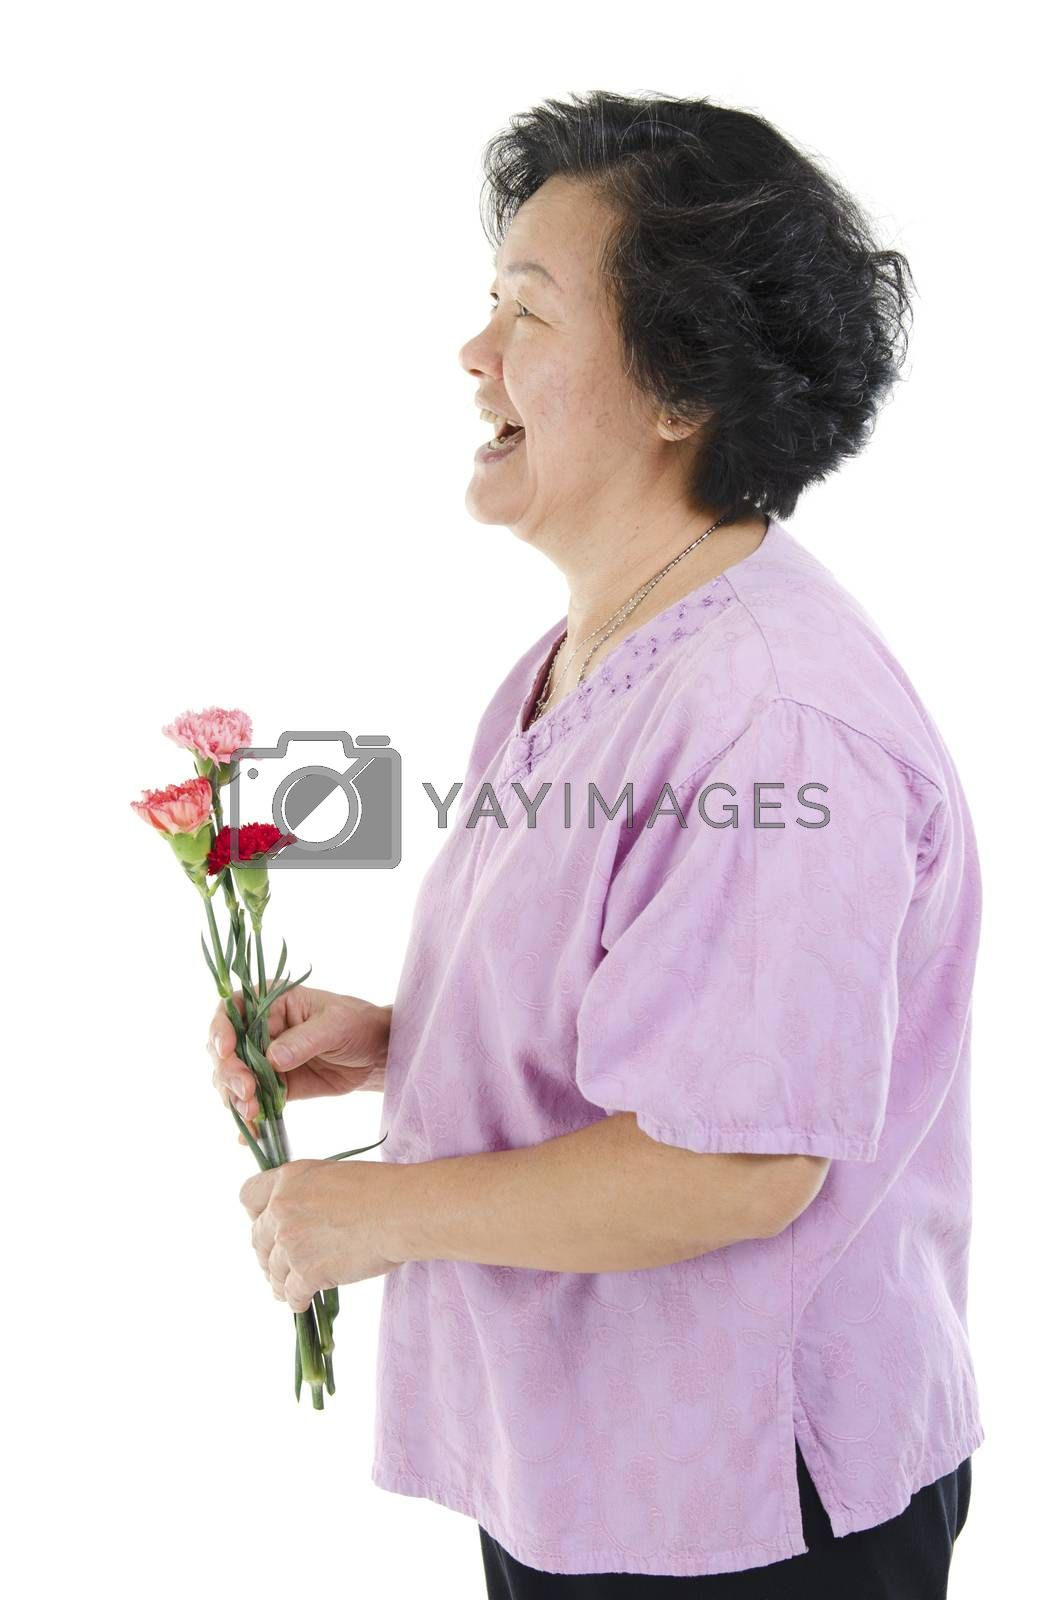 Happy mothers day concept. Profile view of 60s Asian senior adult woman hand holding carnation flower gift and smiling, isolated on white background.